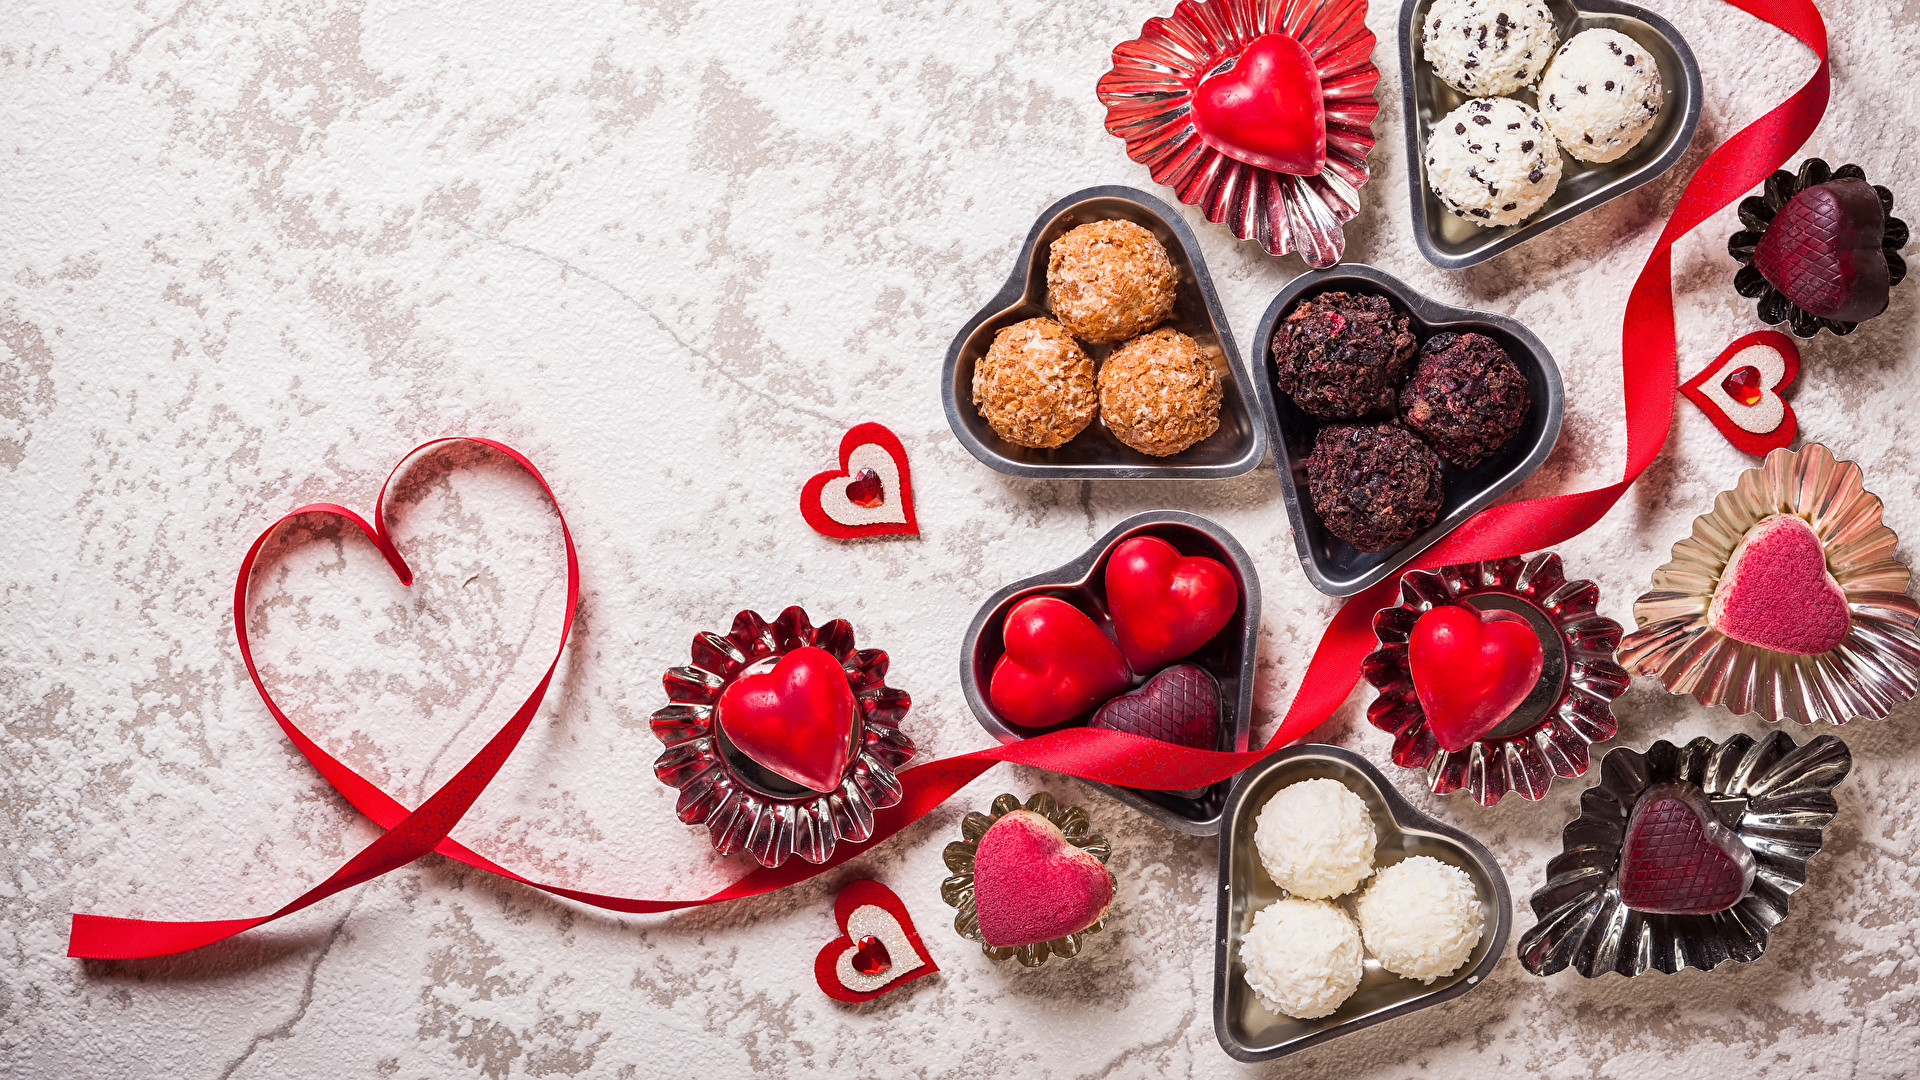 1920x1080 Image Valentine's Day Heart Candy Food Ribbon Sweets